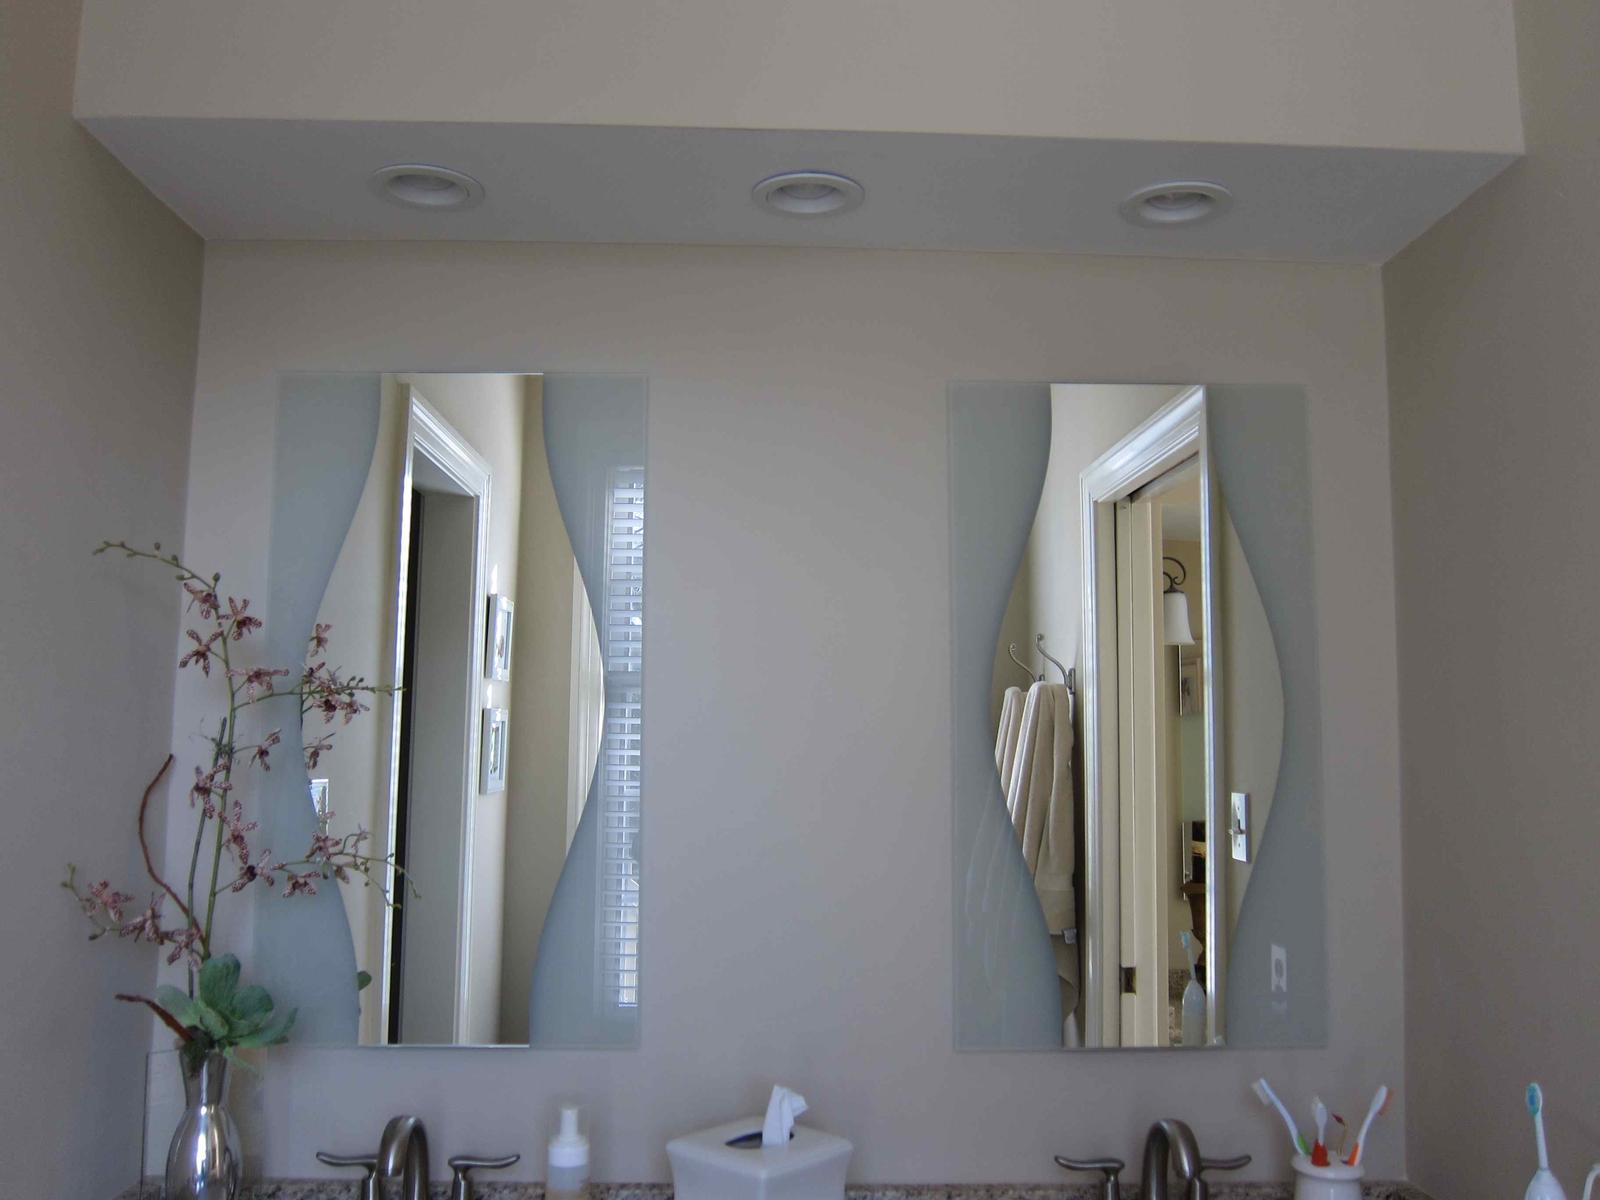 Where can i find these mirrors better home interior for Where can i find mirrors